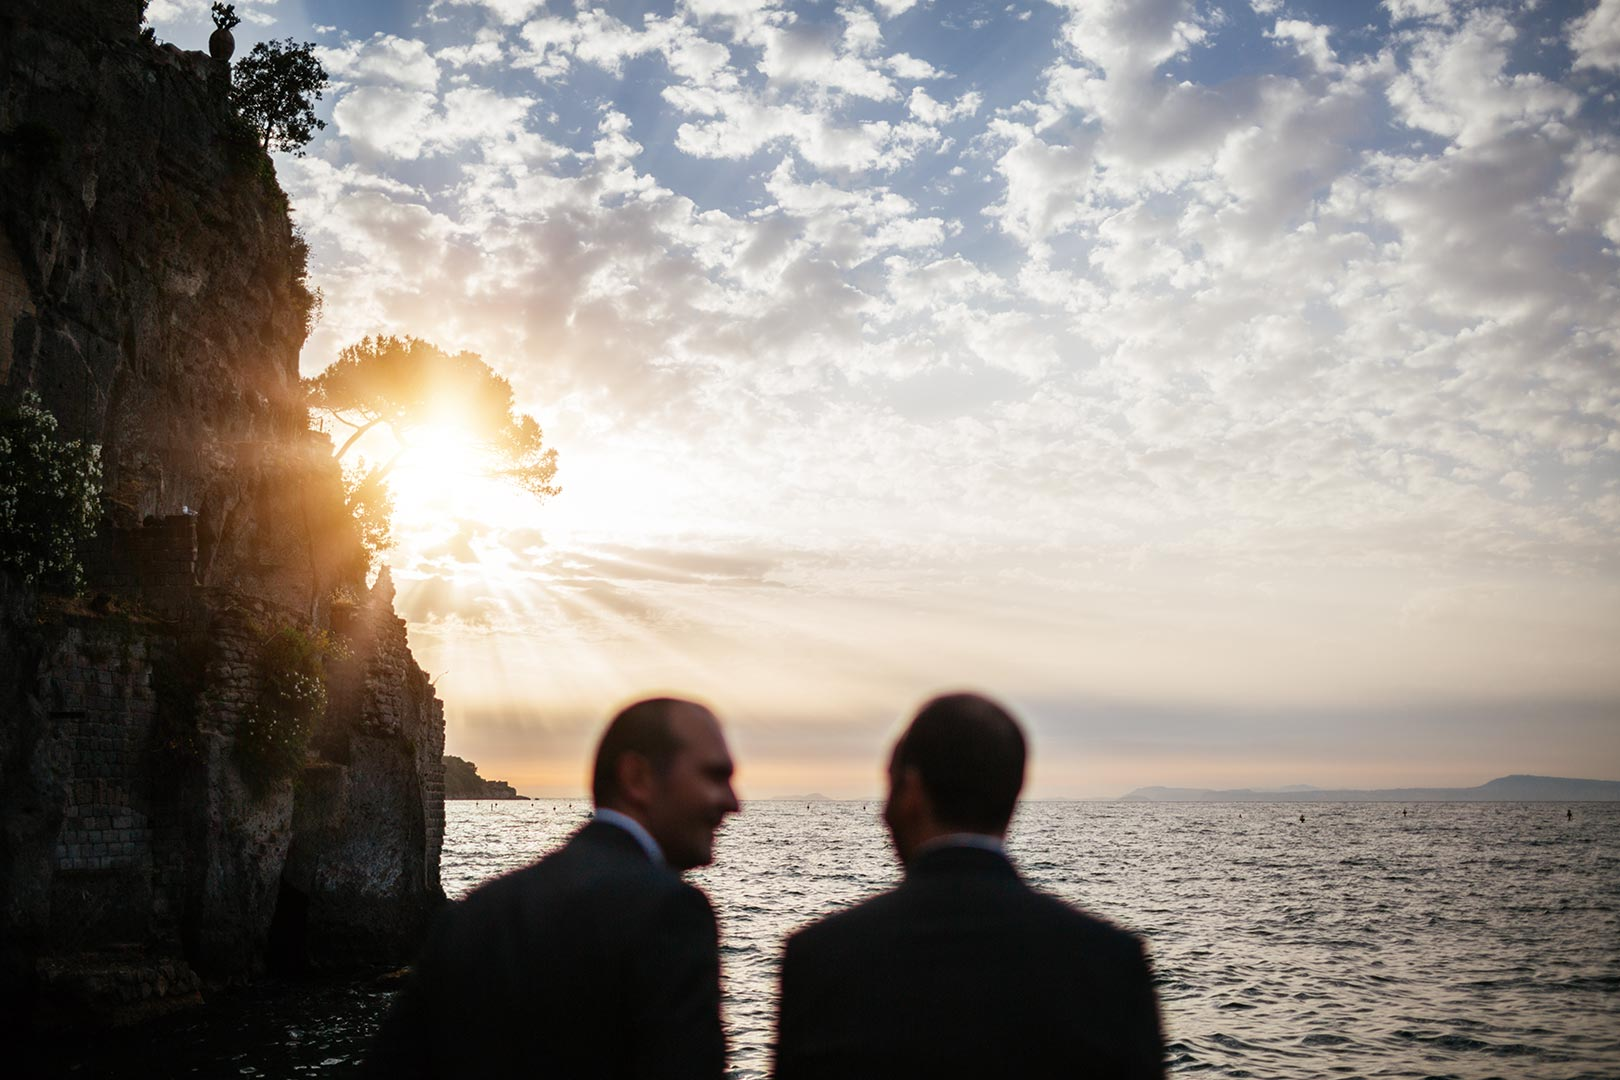 Wedding-at-Sorrento-Jason-Giuseppe